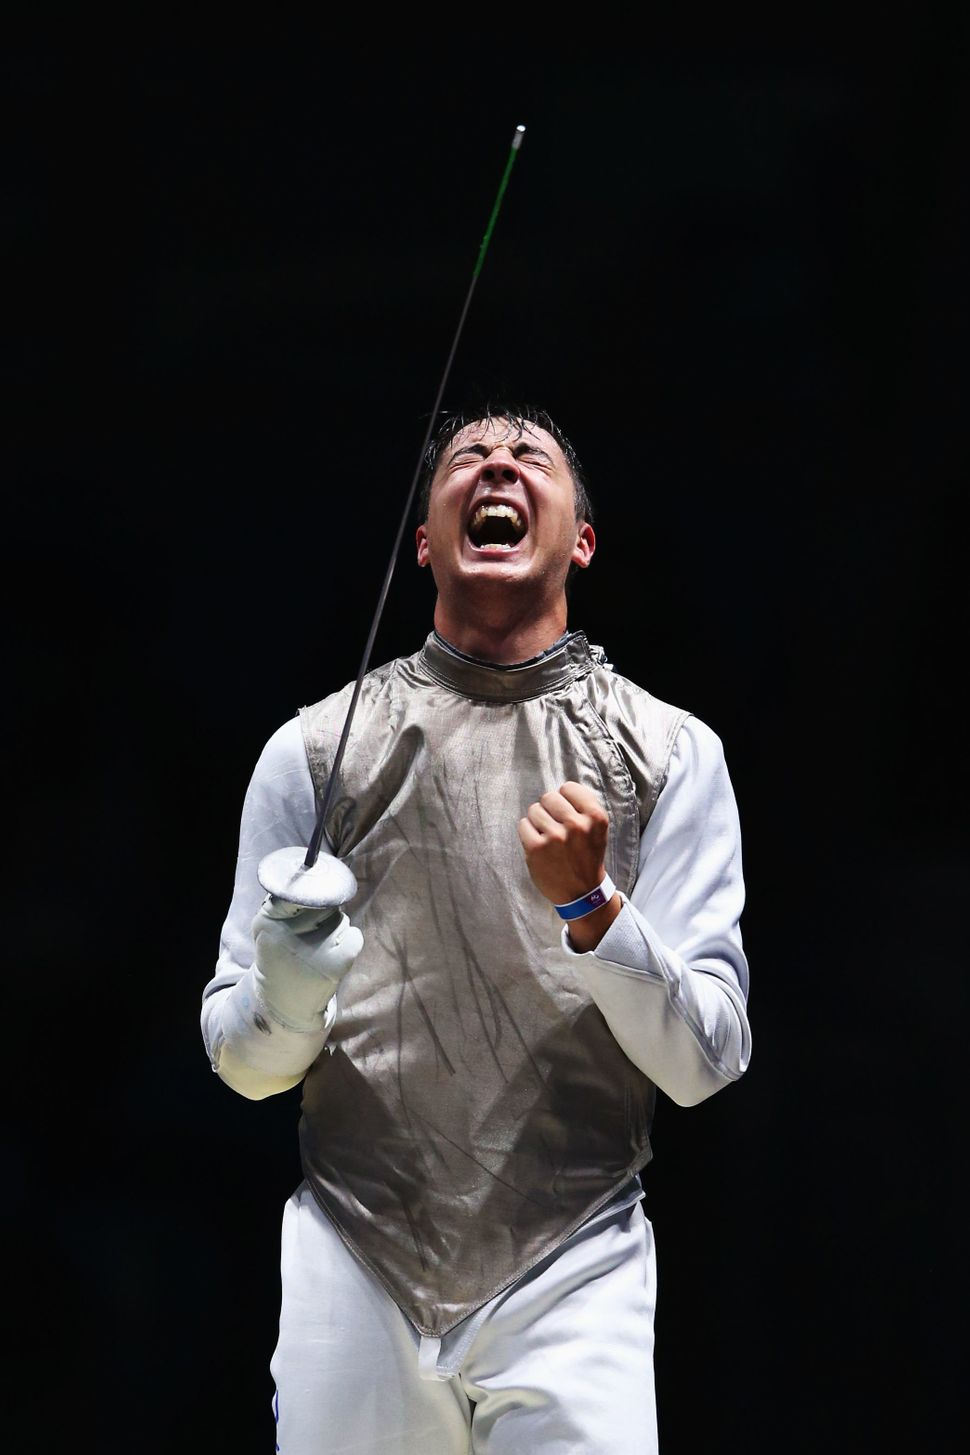 Alexander Massialas of the United States celebrates defeating Giorgio Avola of Italy during Men's Individual Foil on Day 2 of